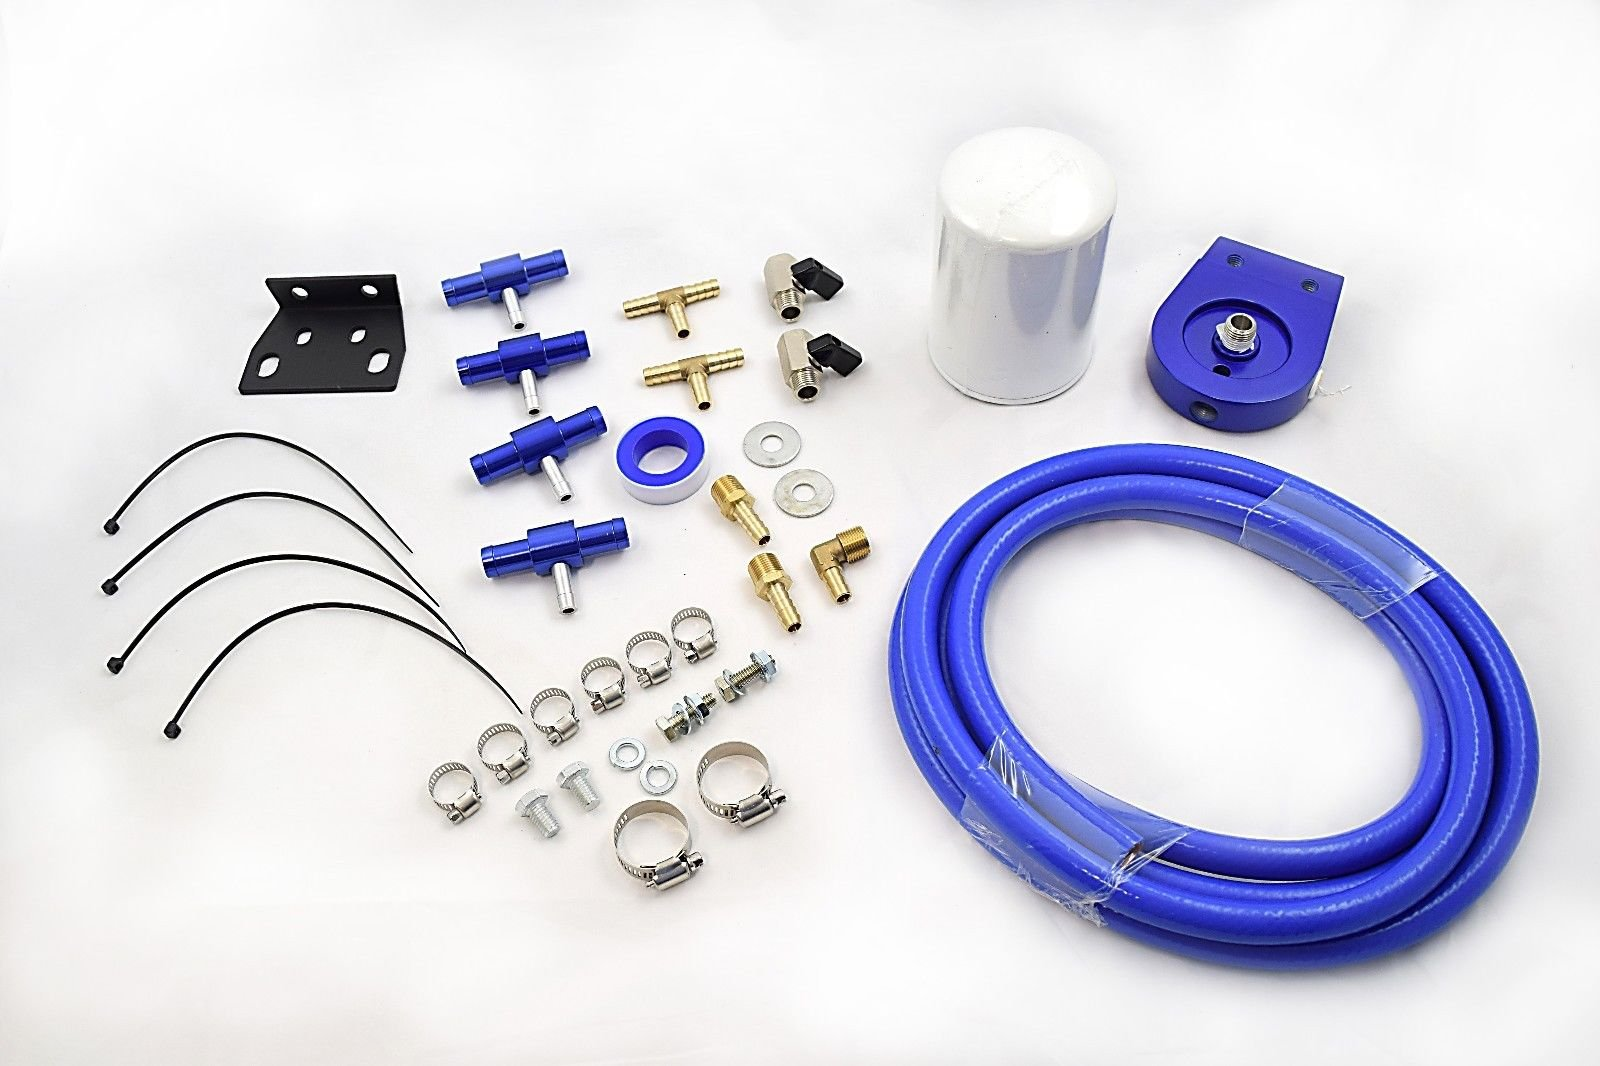 Universal Coolant Filtration Filter Kit For Ford Dodge Chevy GMC GM Jeep